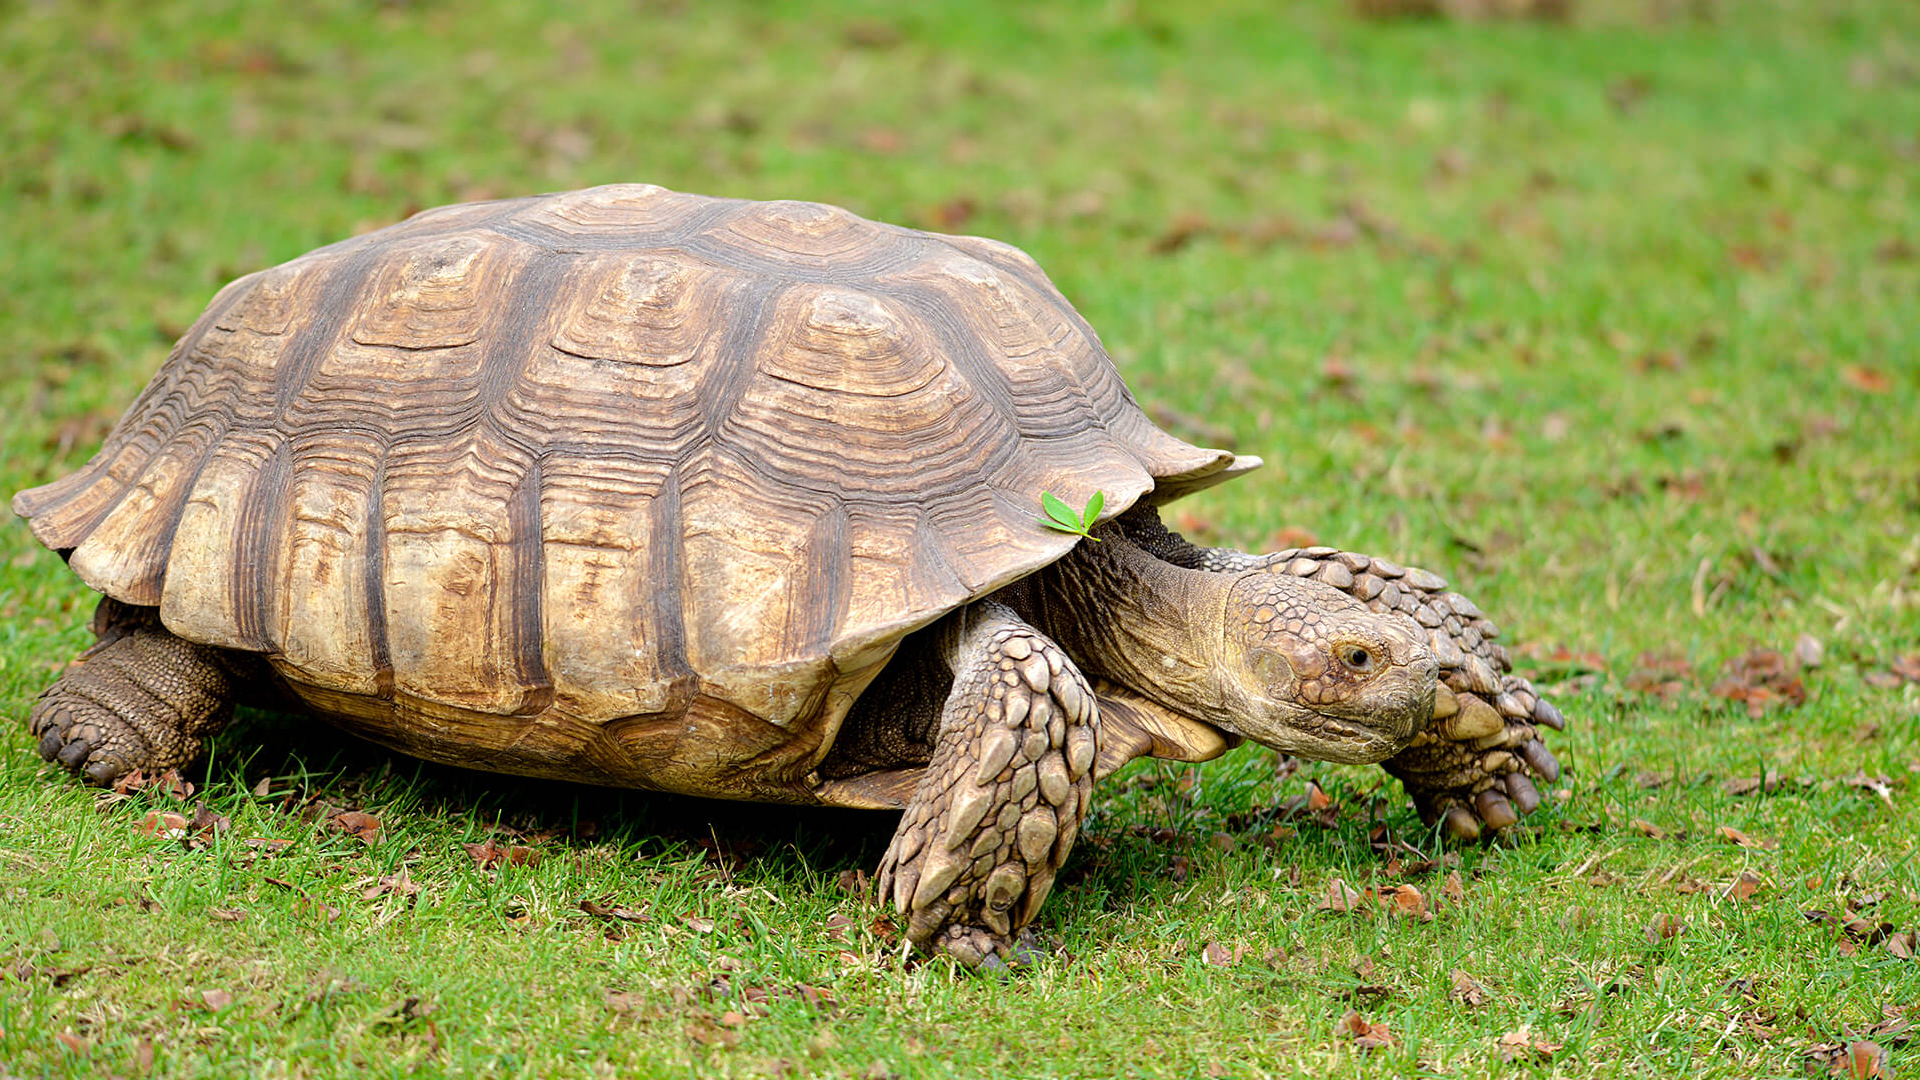 African spurred tortoise - photo#5